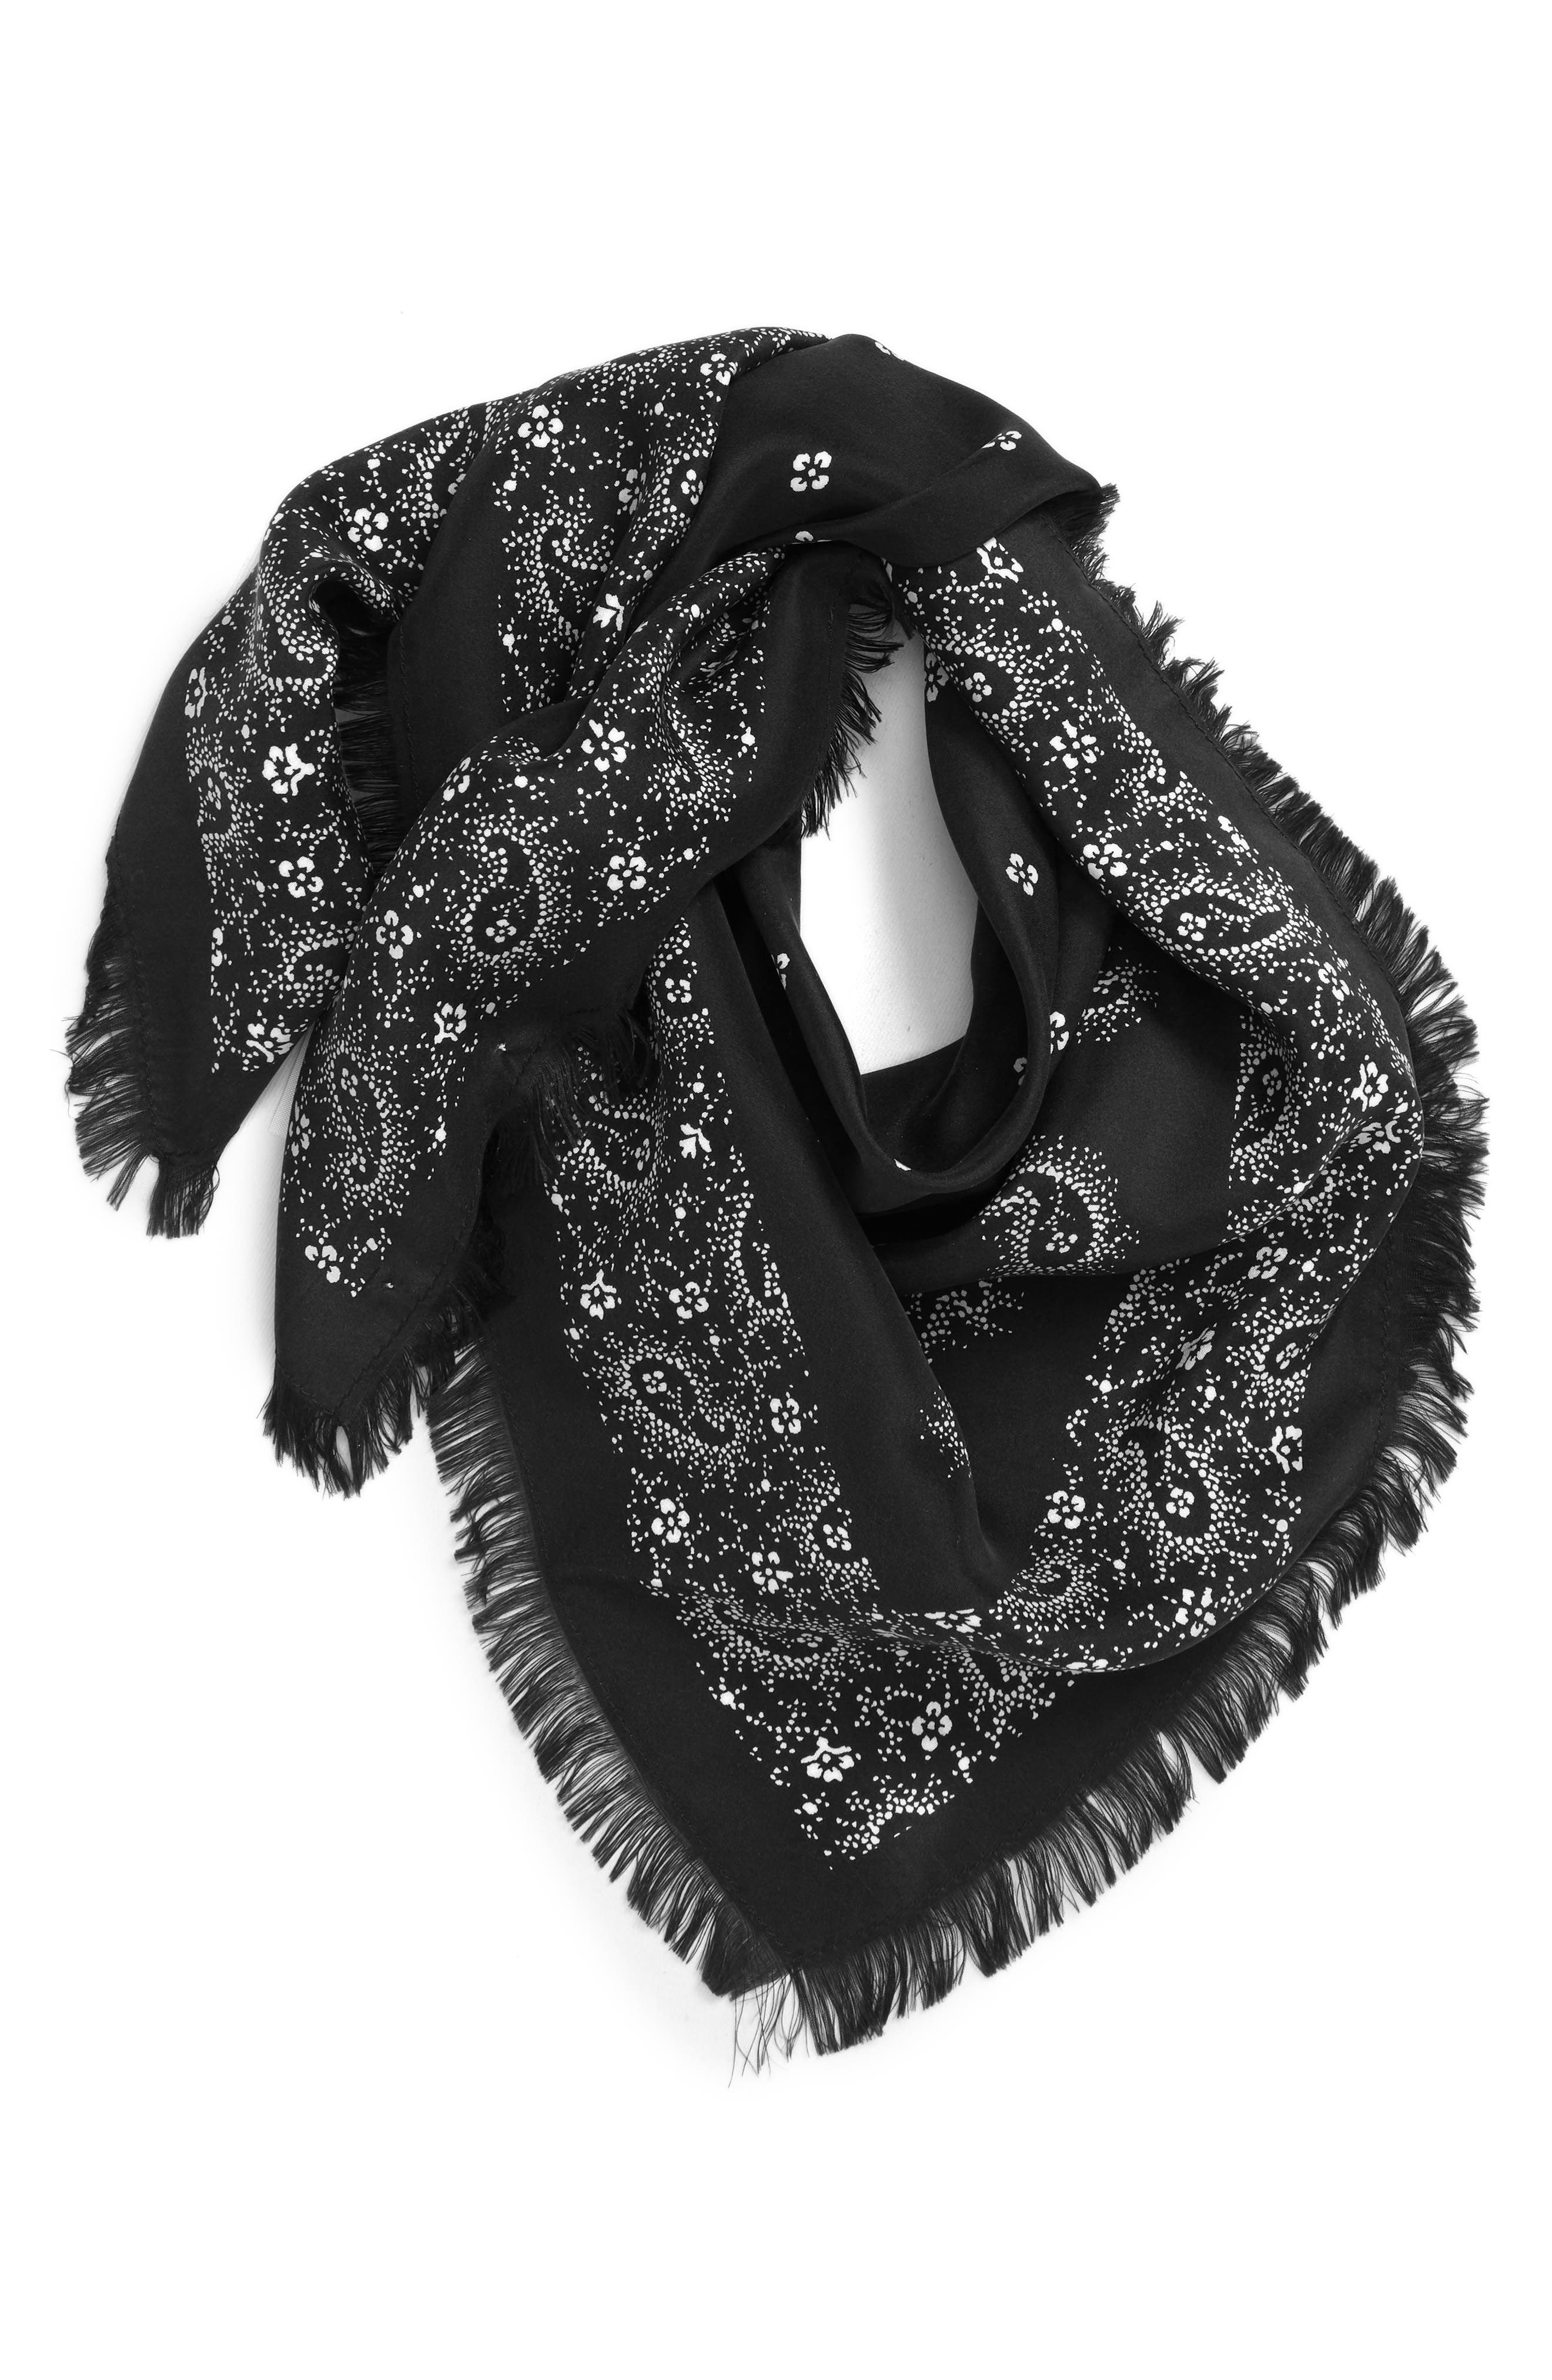 A beautifully quilted landscape stretches across this lightly fringed silk scarf popping with homespun patterning. When you buy Treasure & Bond, Nordstrom will donate 2.5% of net sales to organizations that work to empower youth. Style Name: Treasure & Bond Print Square Silk Scarf. Style Number: 5625514. Available in stores.